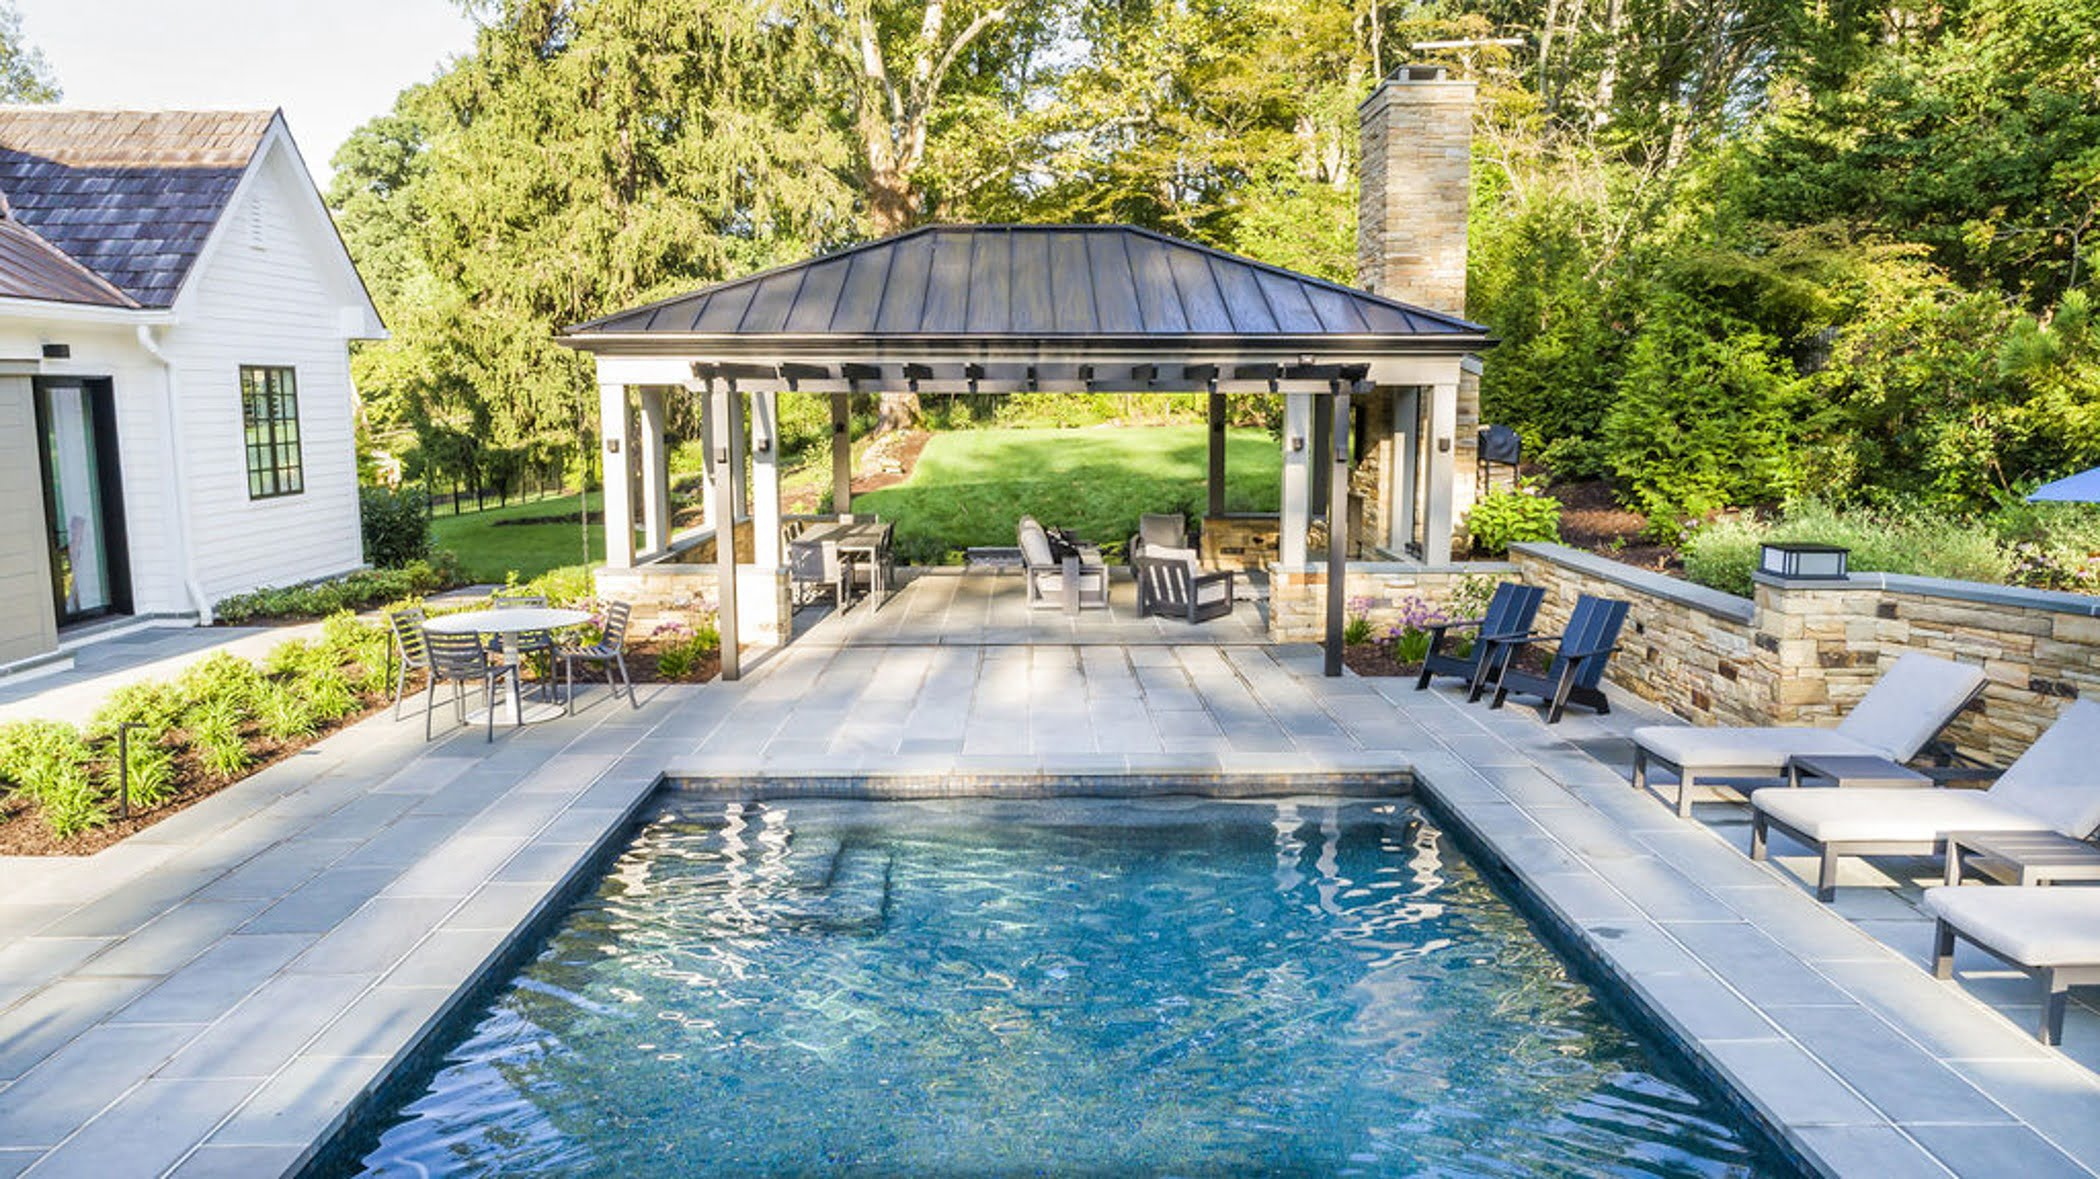 Transitional backyard patio bar and pool house with concrete pavers and cobblestone accented retaining walls (Different view)